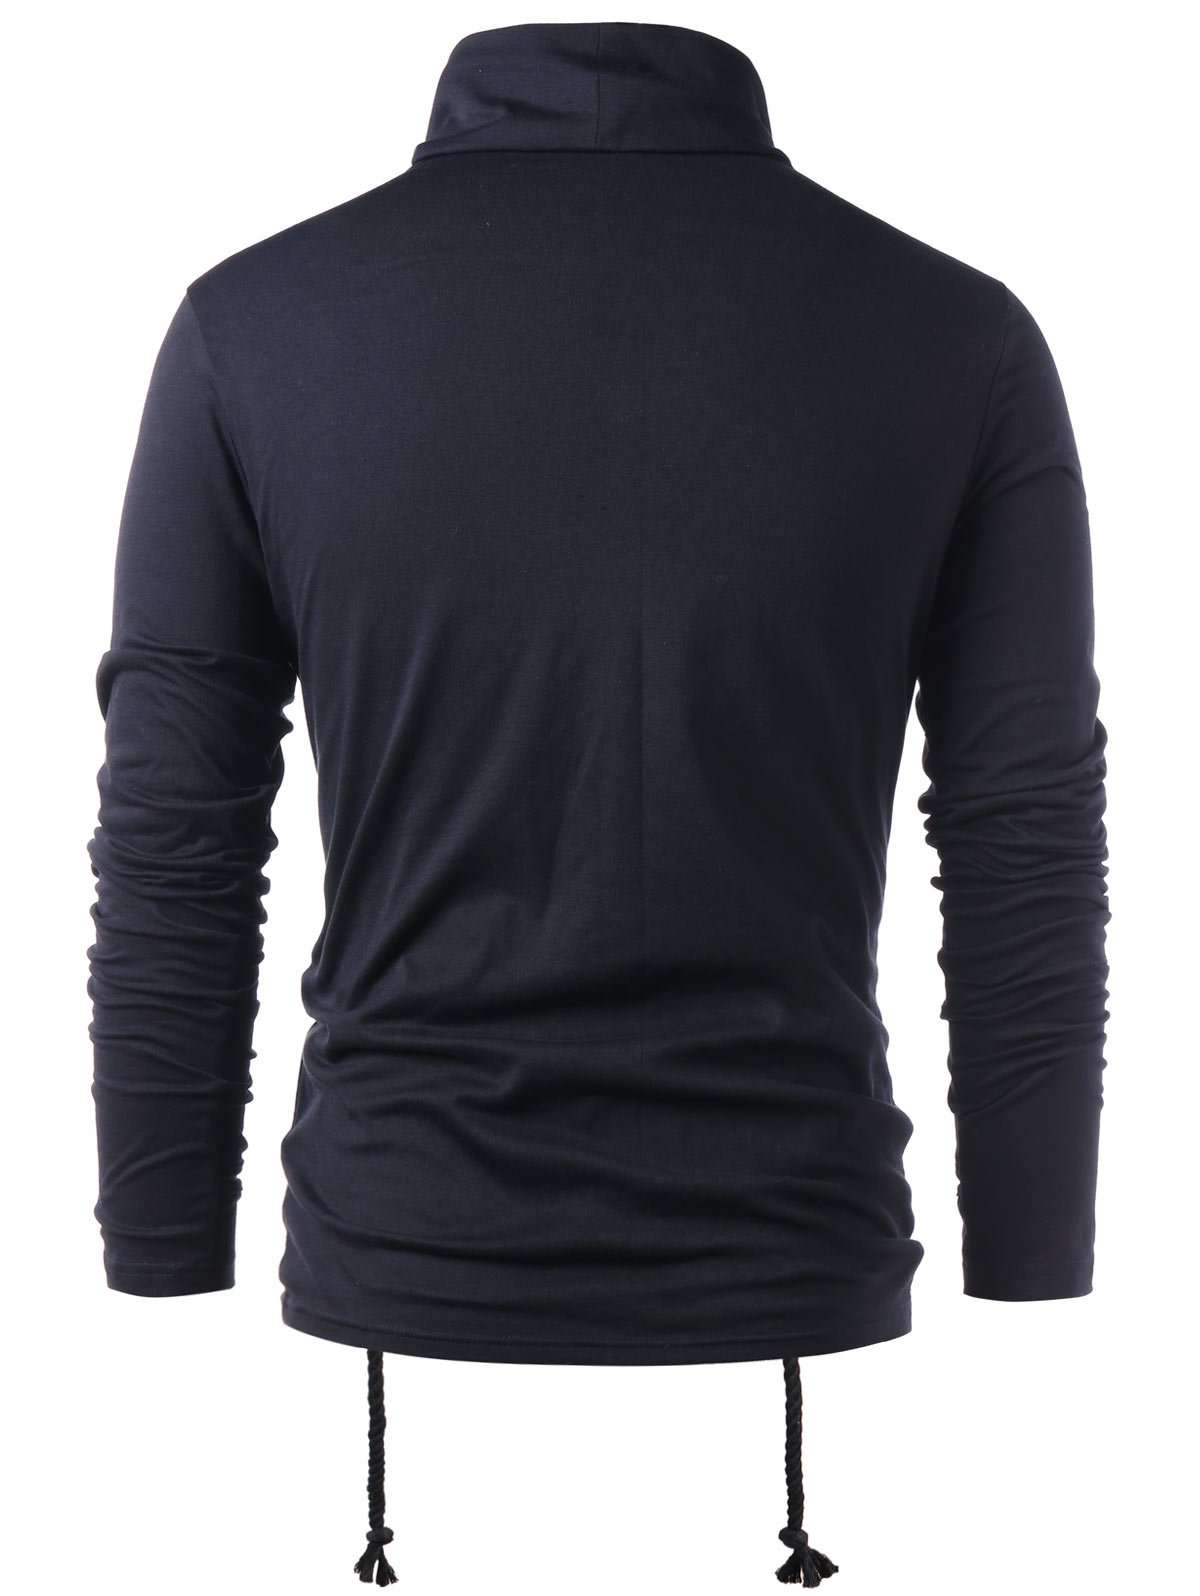 Turtle Neck Lace Up Long Sleeve T-shirt